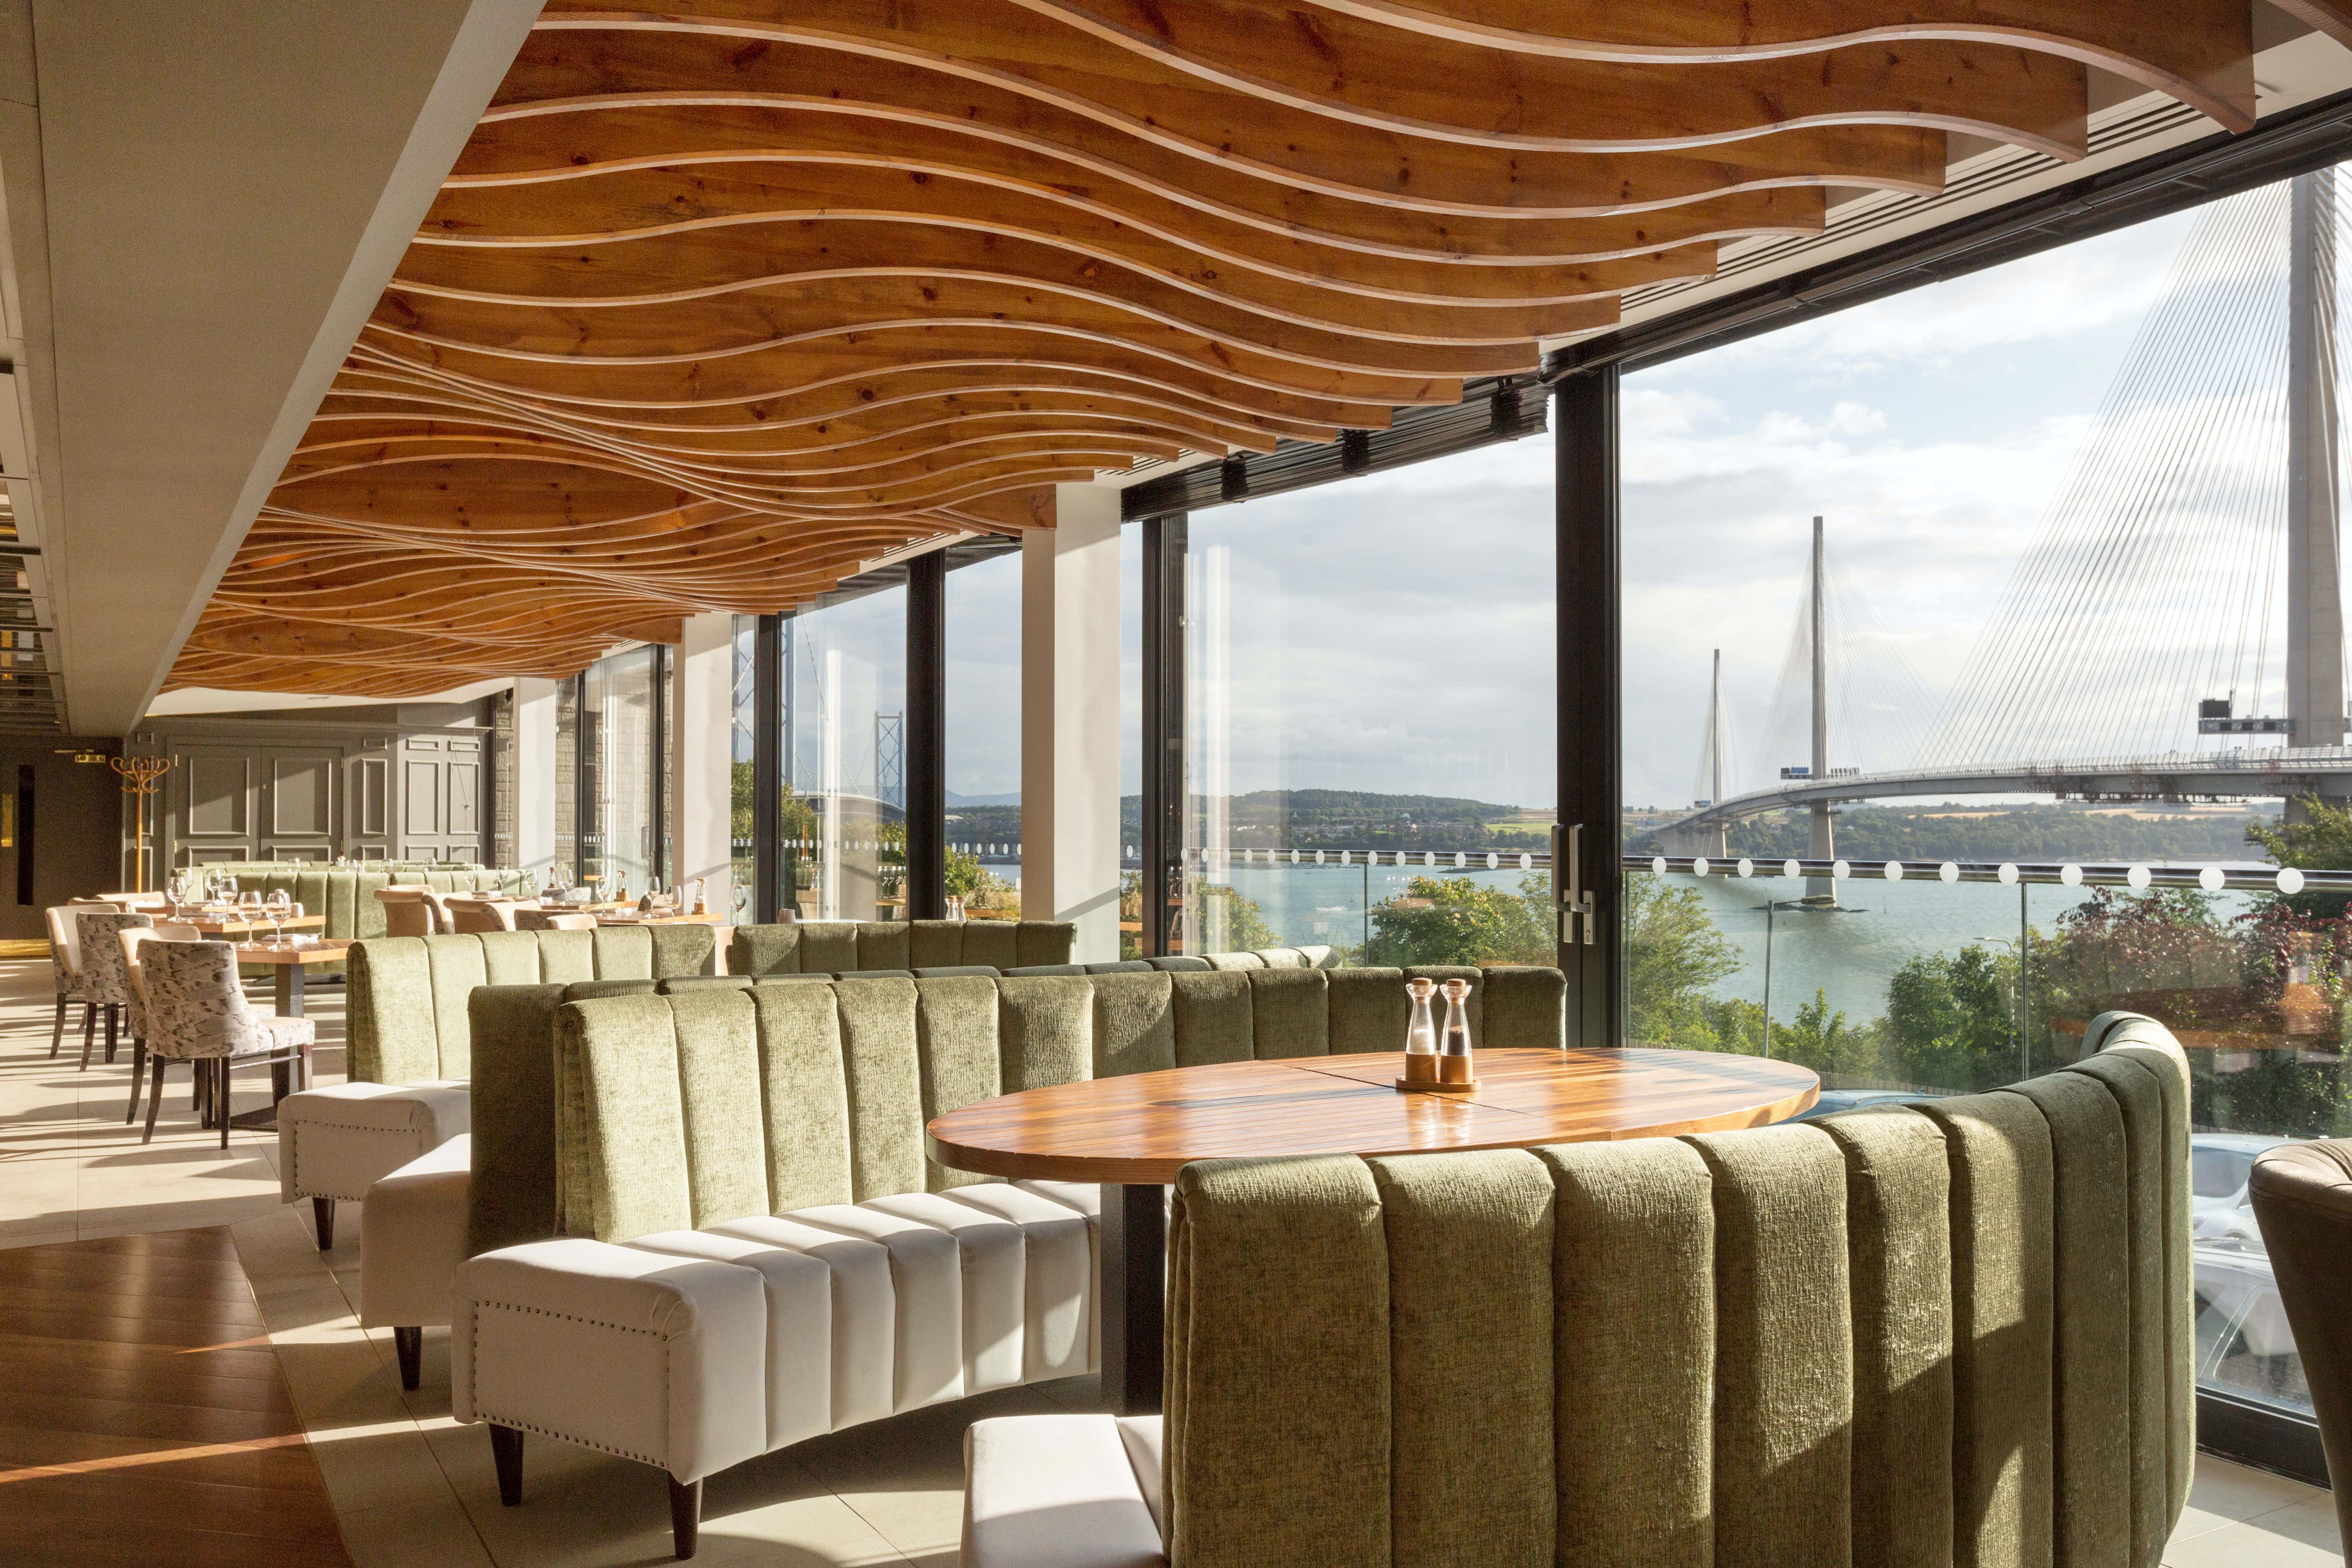 The Shore Grill & Fish House, DoubleTree by Hilton Edinburgh - Queensferry Crossing